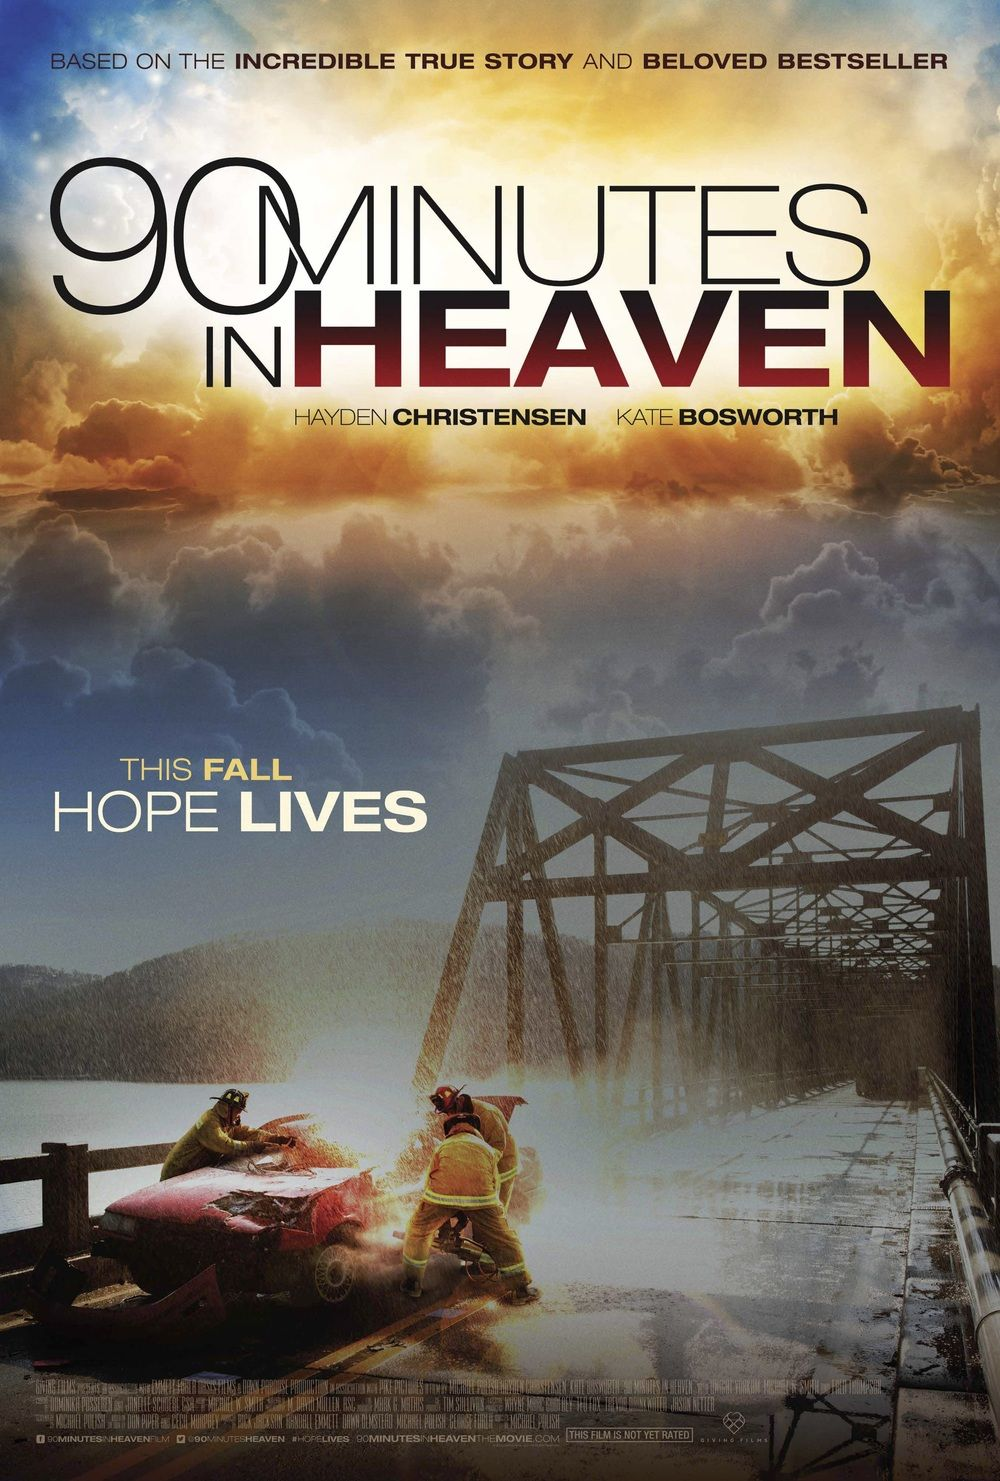 '90 Minutes in Heaven' CFDb Movie Review Heaven movie